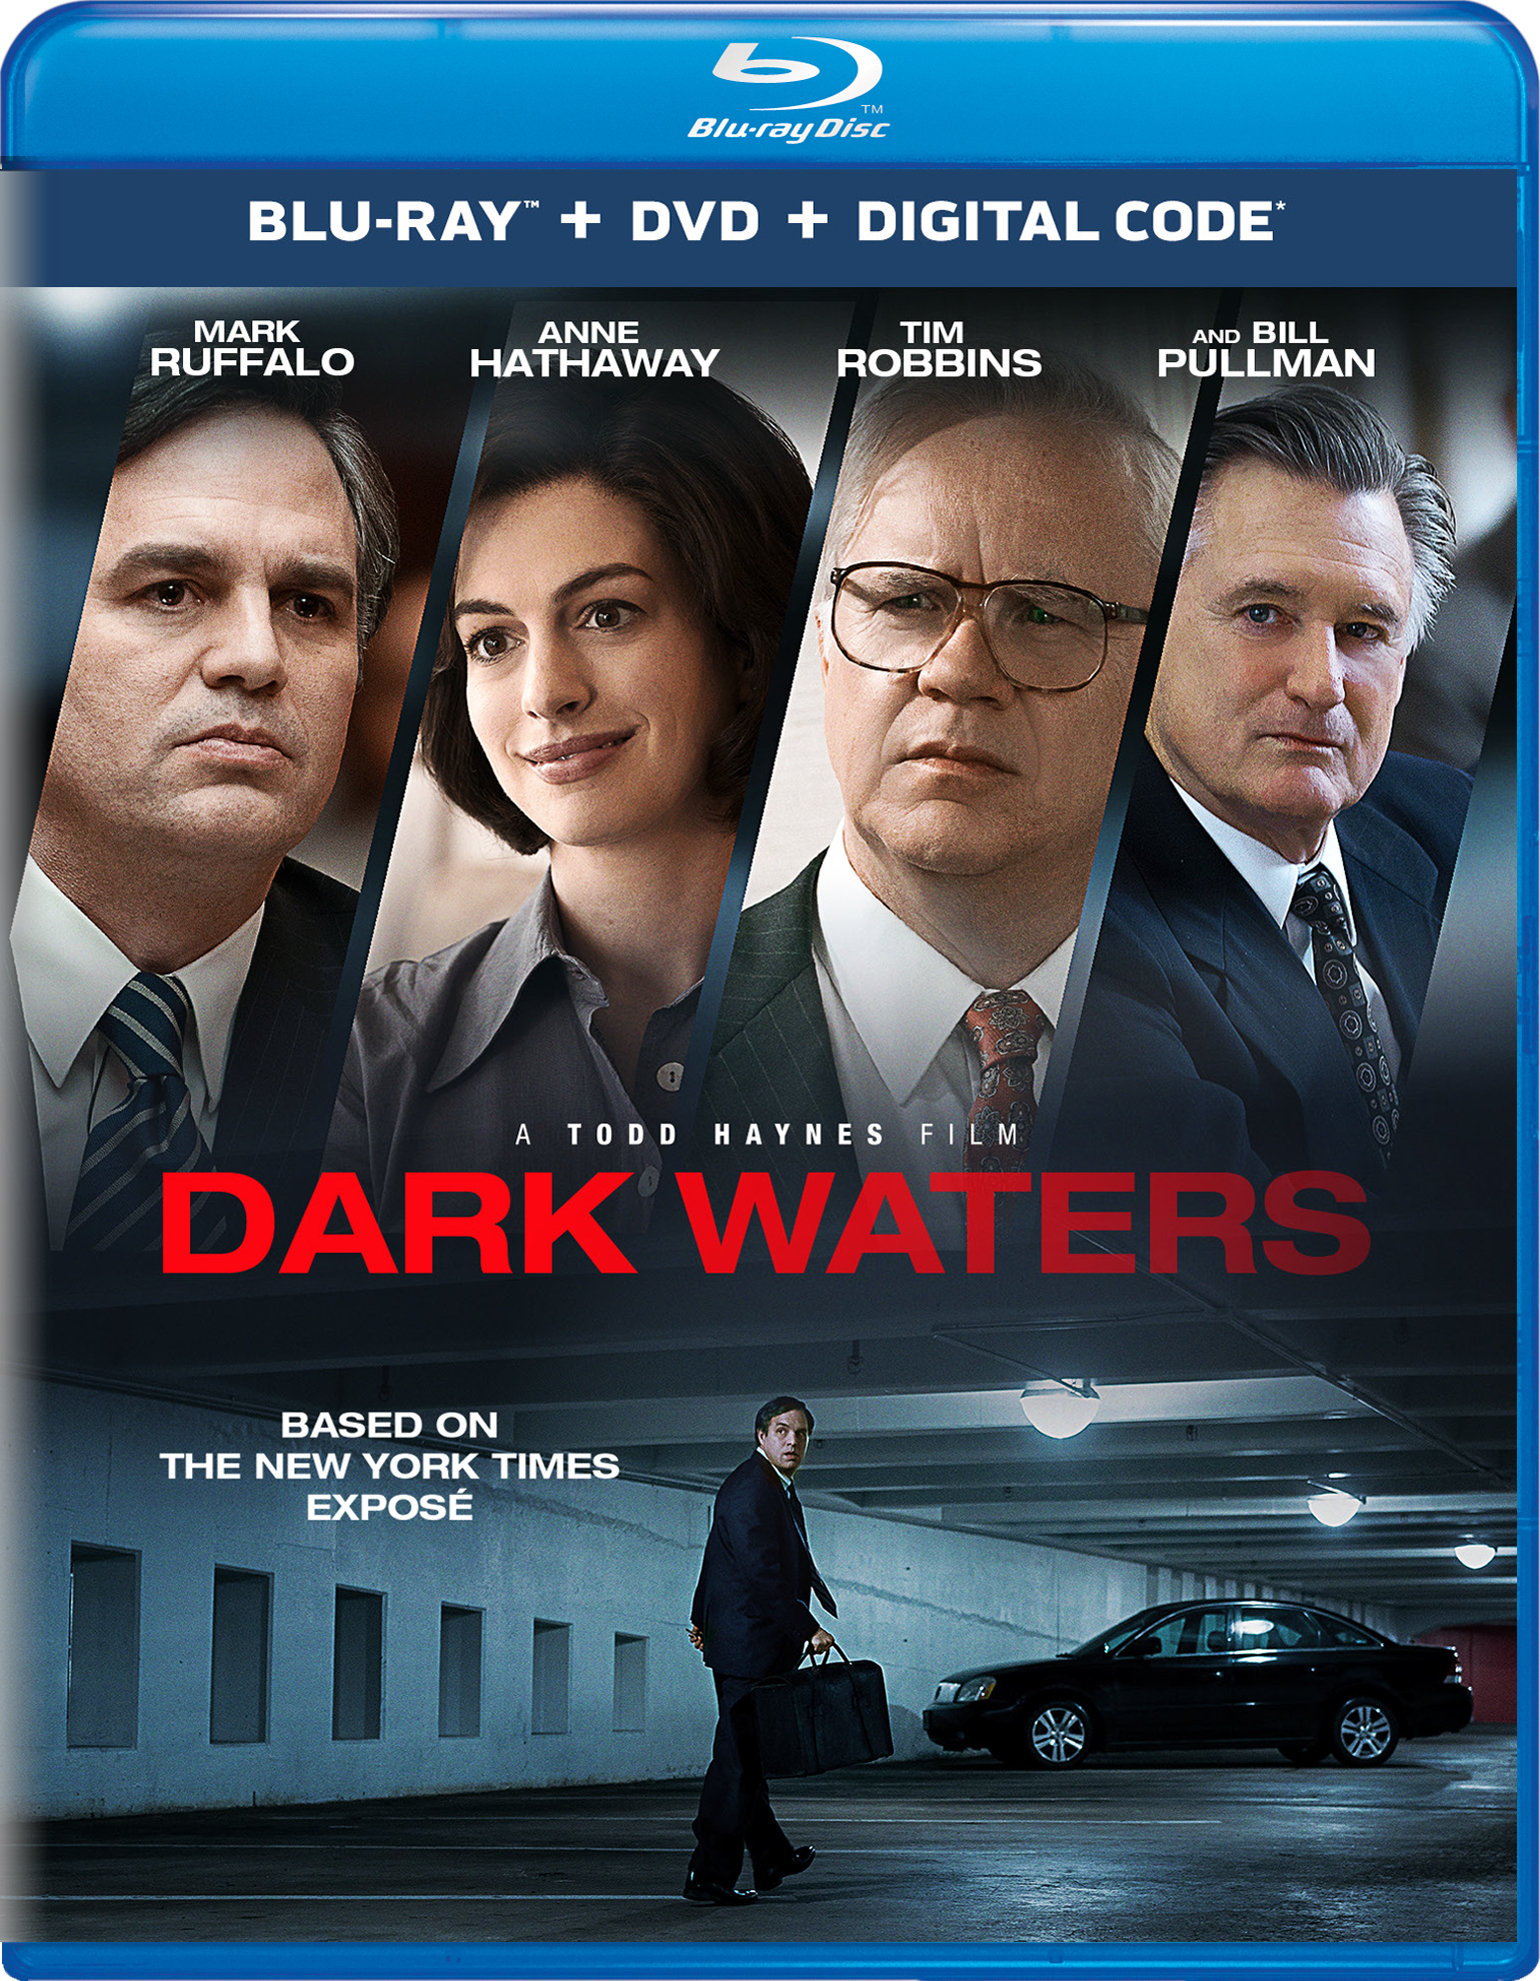 Dark Waters (2019) poster image